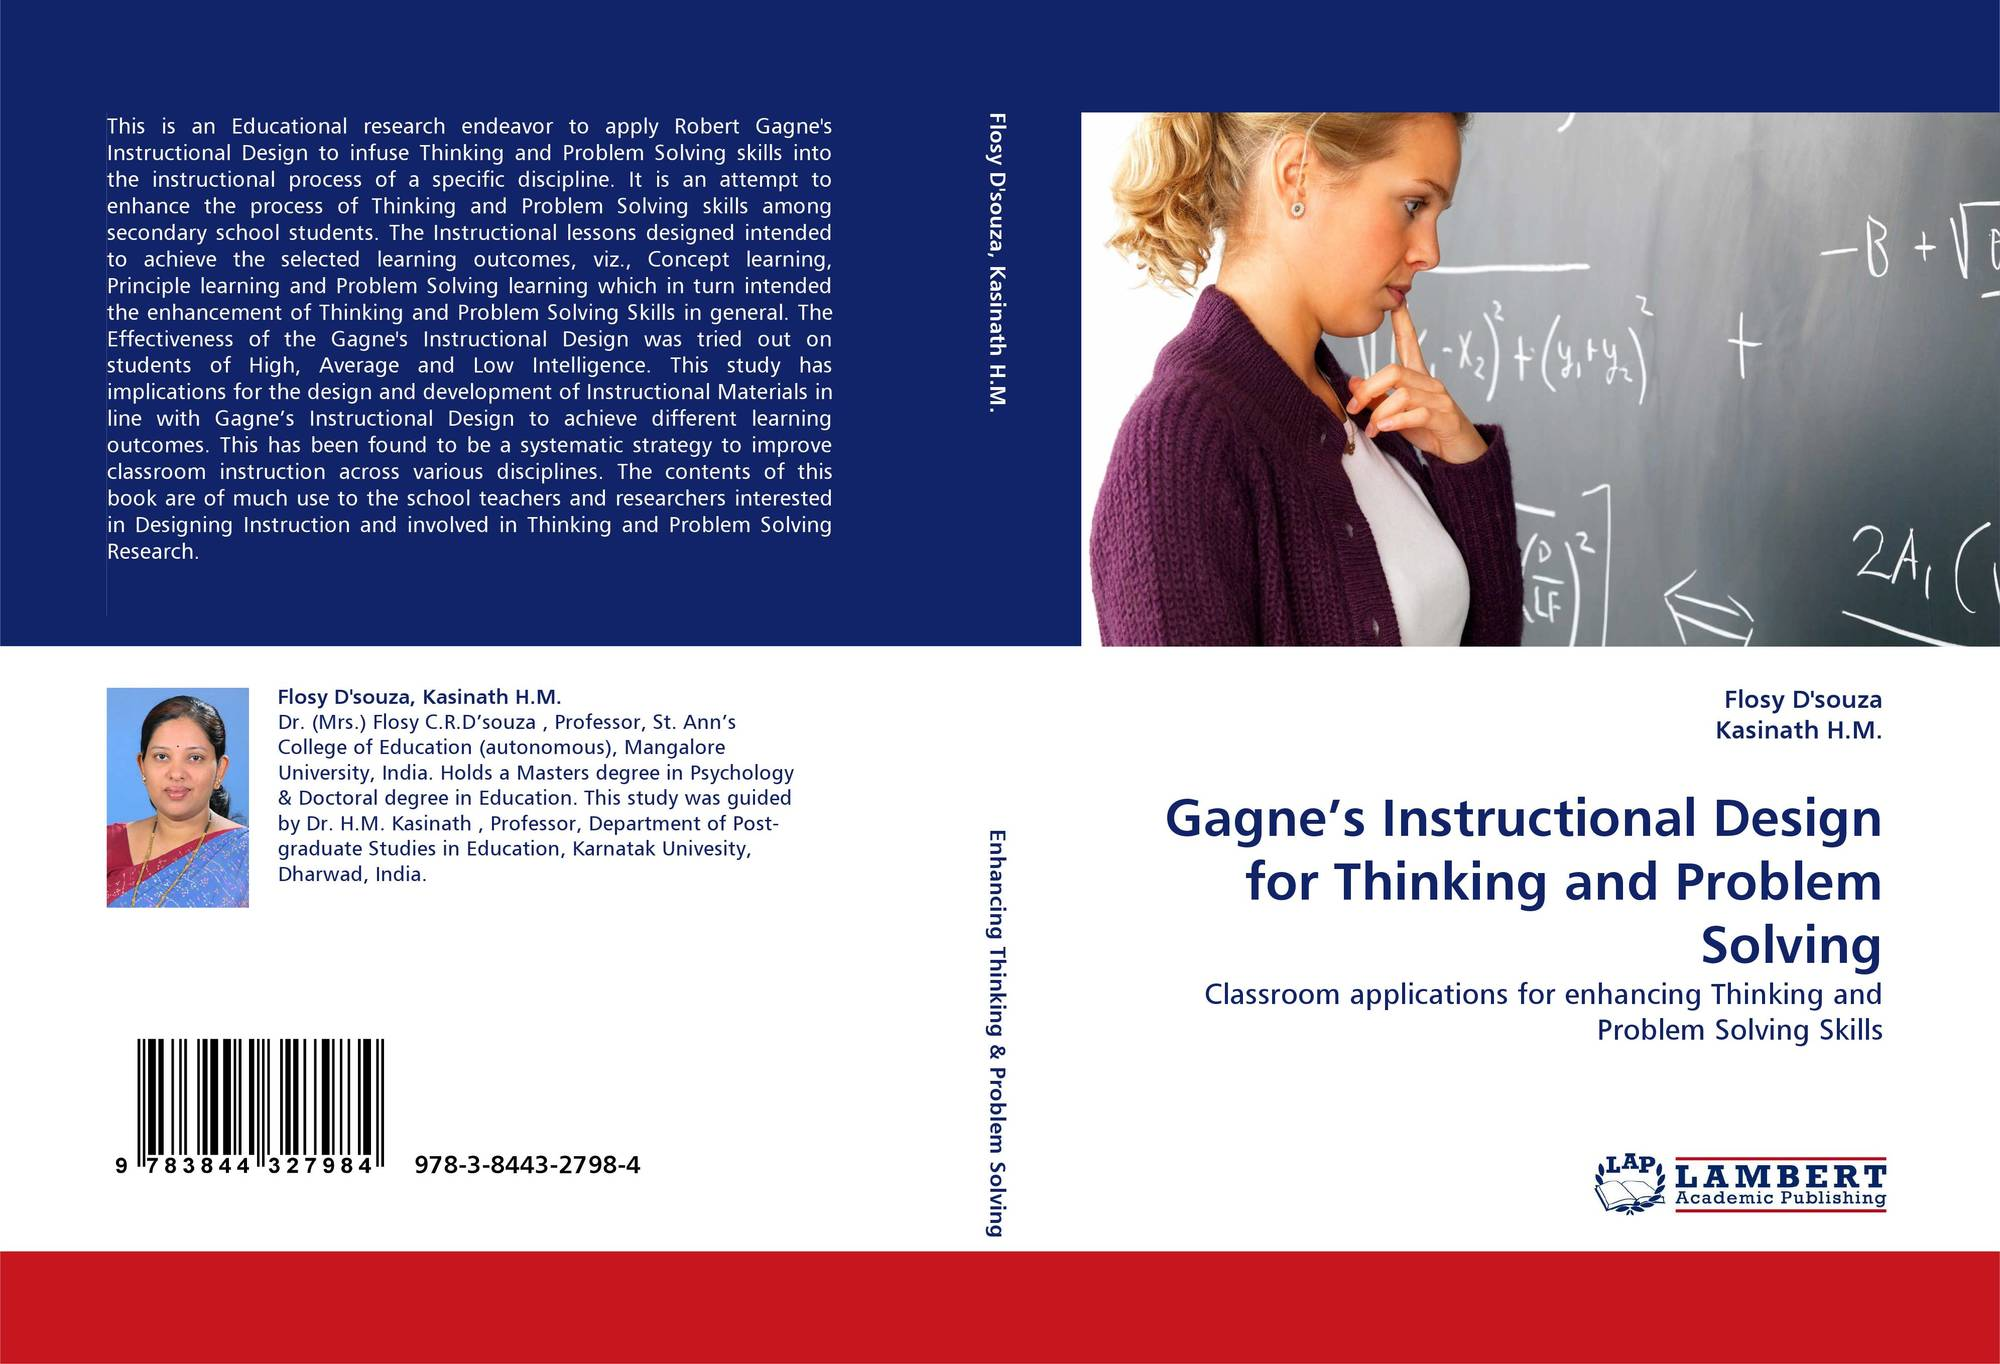 Gagne S Instructional Design For Thinking And Problem Solving 978 3 8443 2798 4 3844327983 9783844327984 By Flosy D Souza Kasinath H M